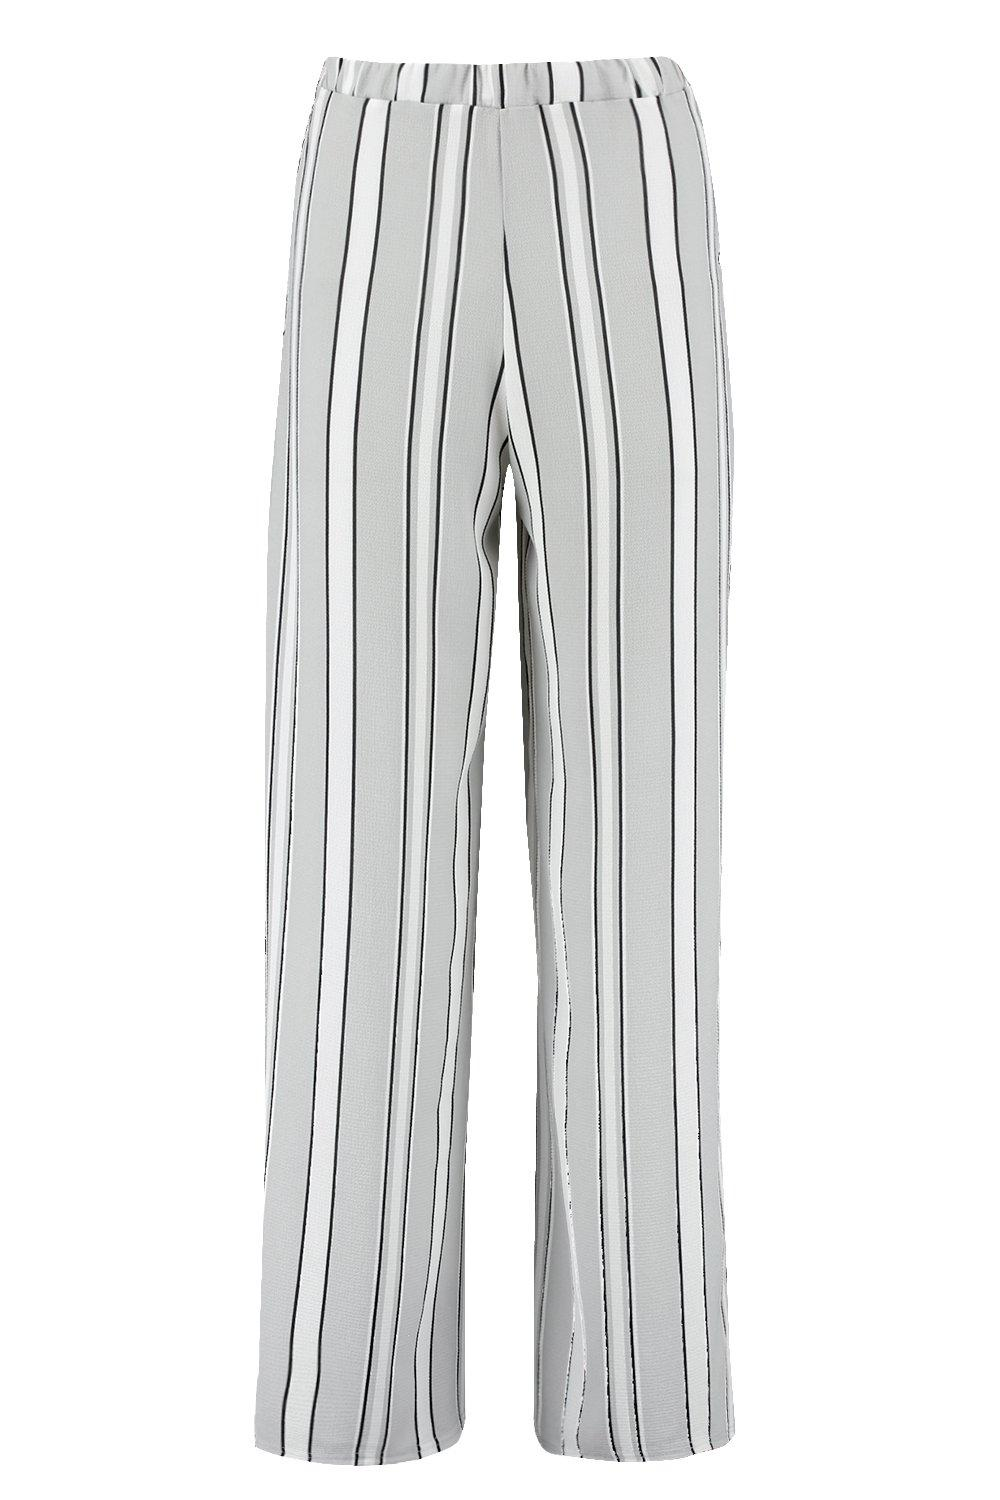 Petite Stripe grey Wide Leg Woven Trouser q8UwgqrTv